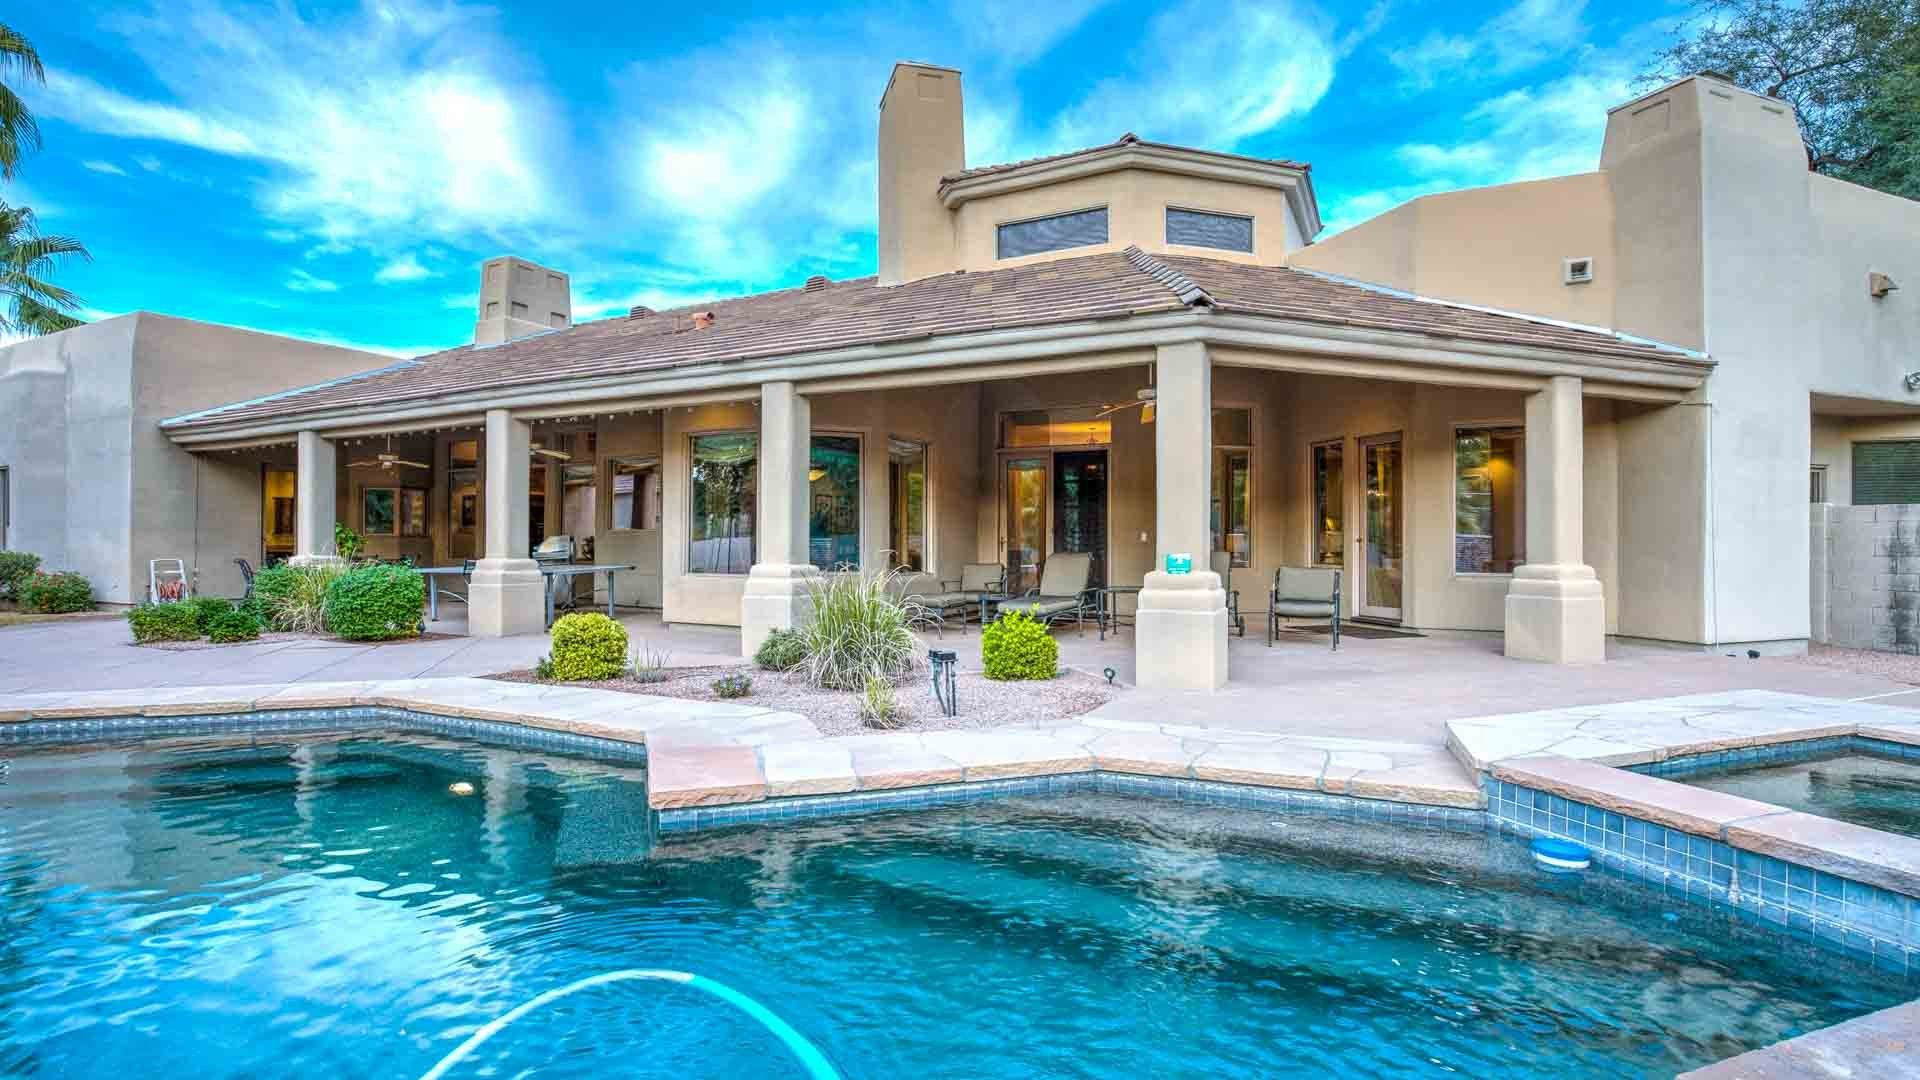 Marvelous Lakewood Ahwatukee Homes For Sale In Phoenix Az Beutiful Home Inspiration Ommitmahrainfo